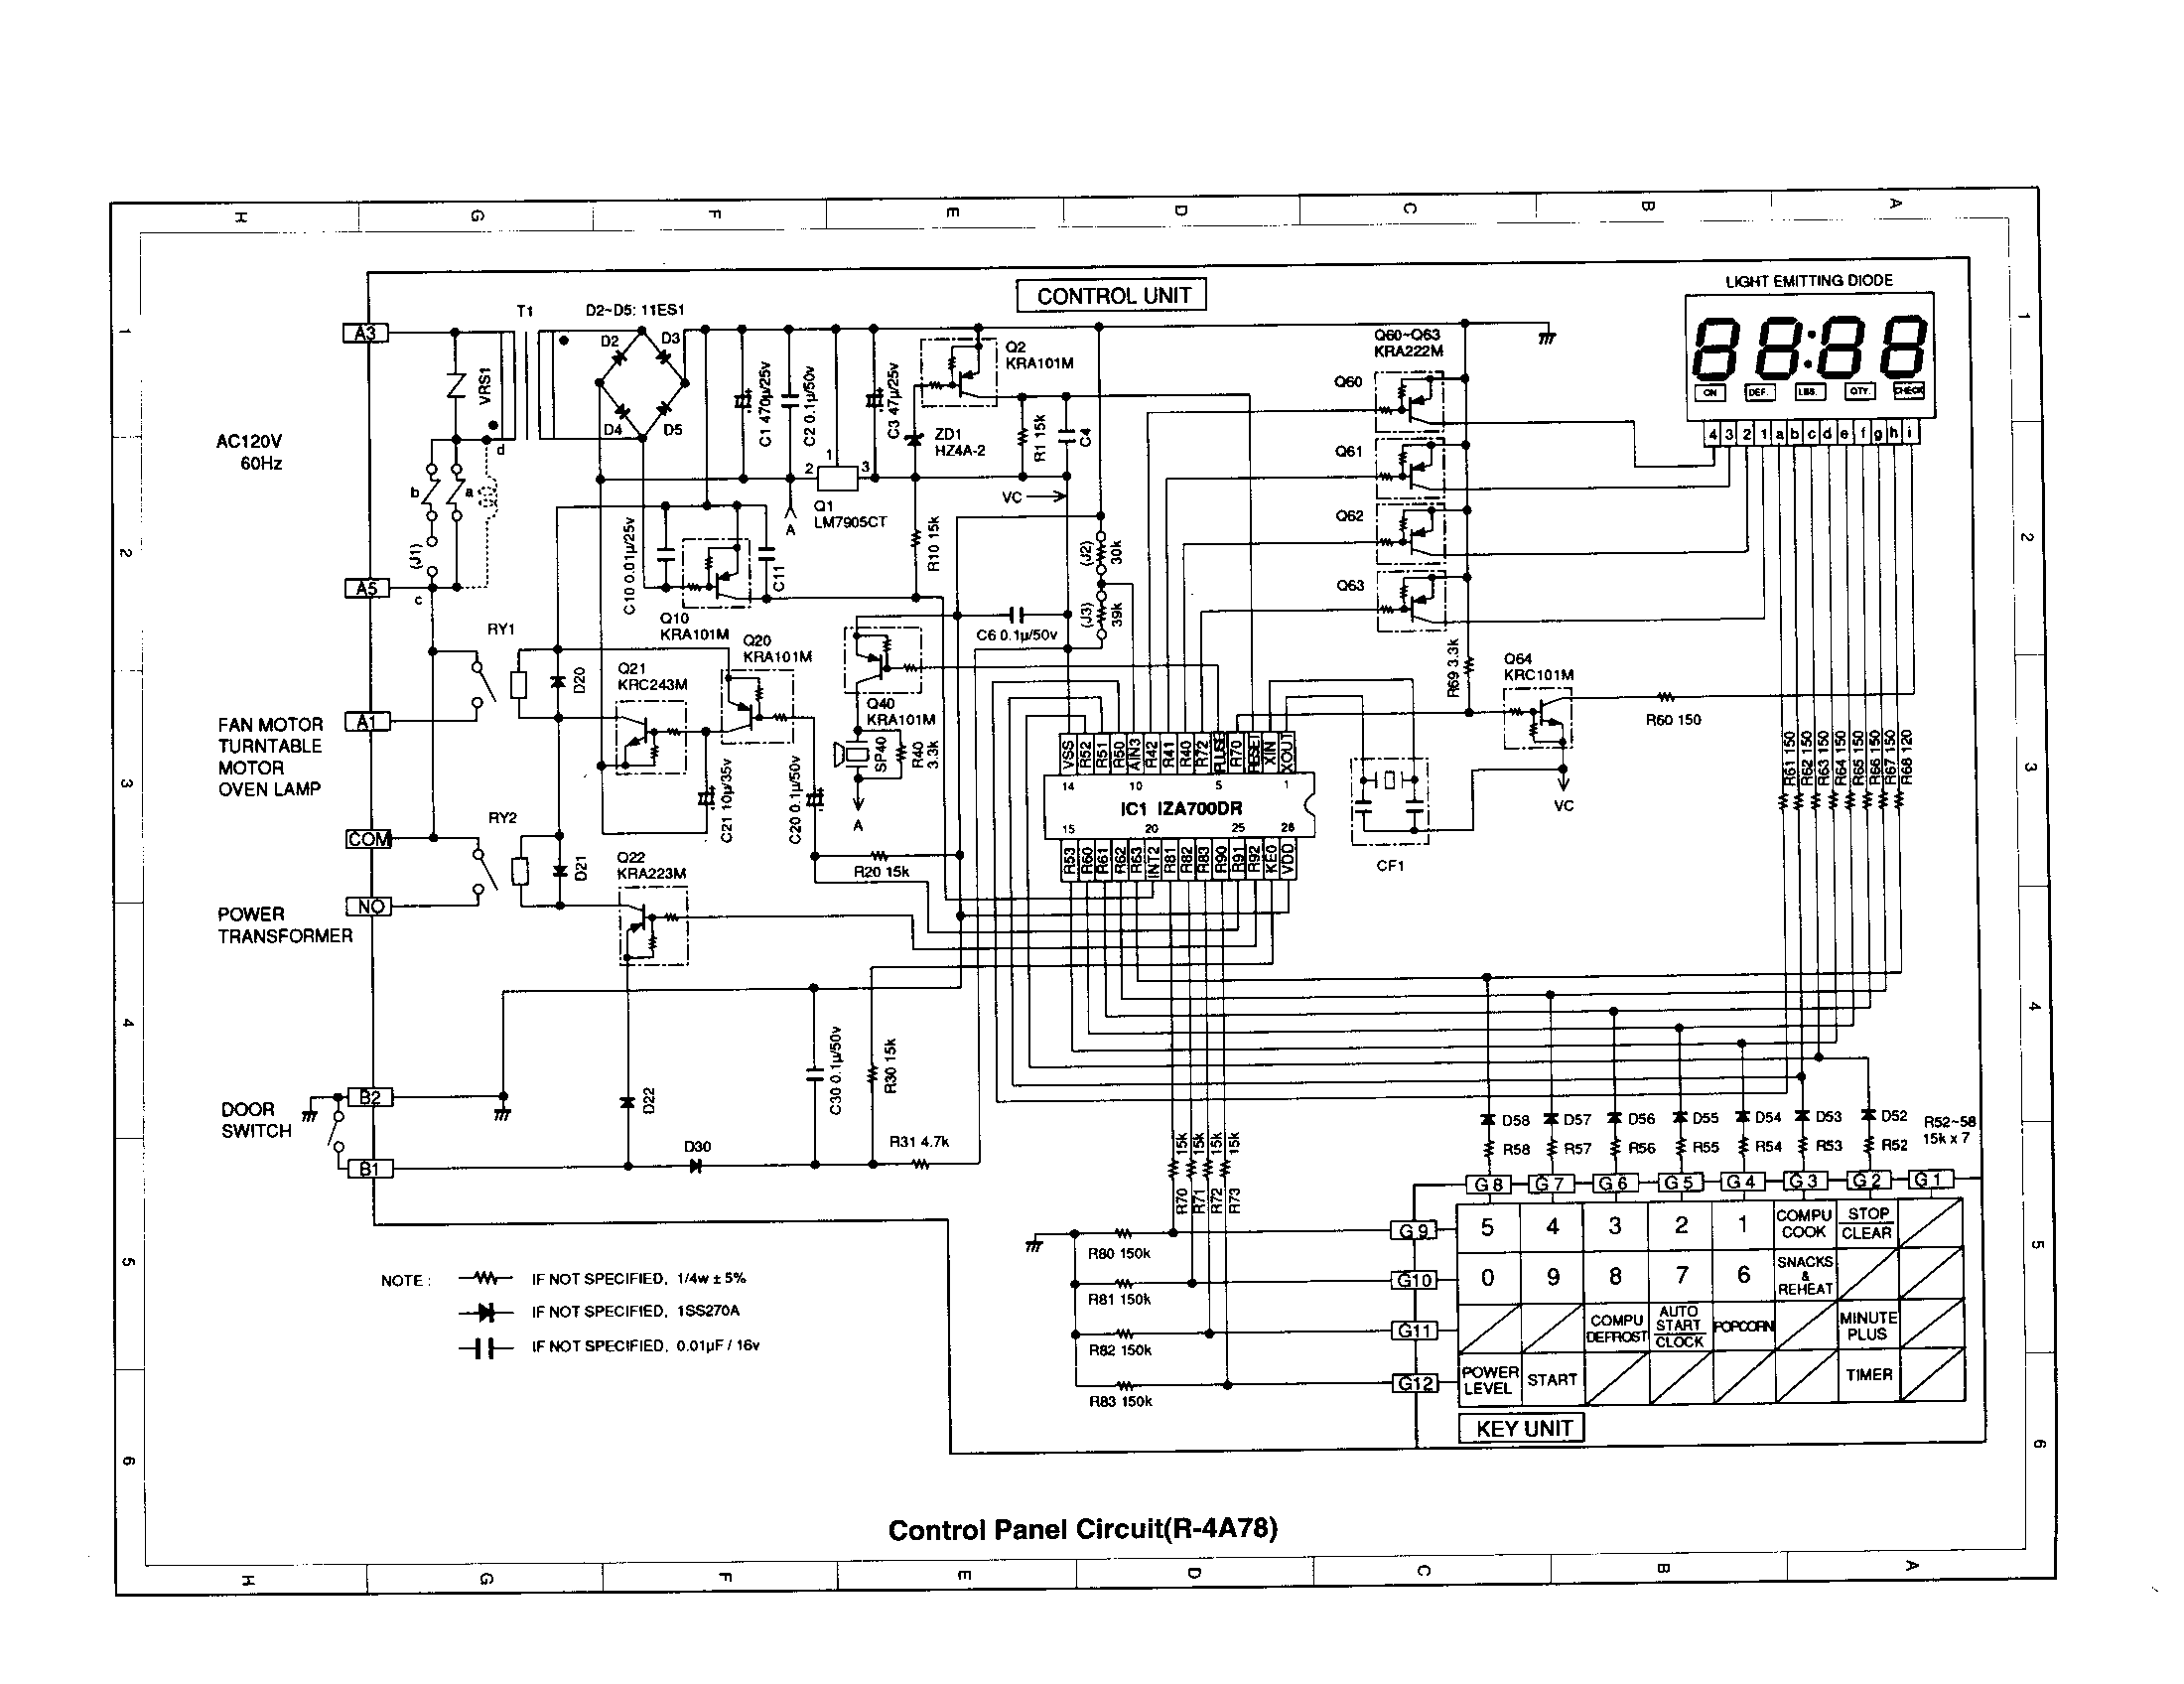 CONTROL PANEL CIRCUIT (R-4A78) Diagram & Parts List for